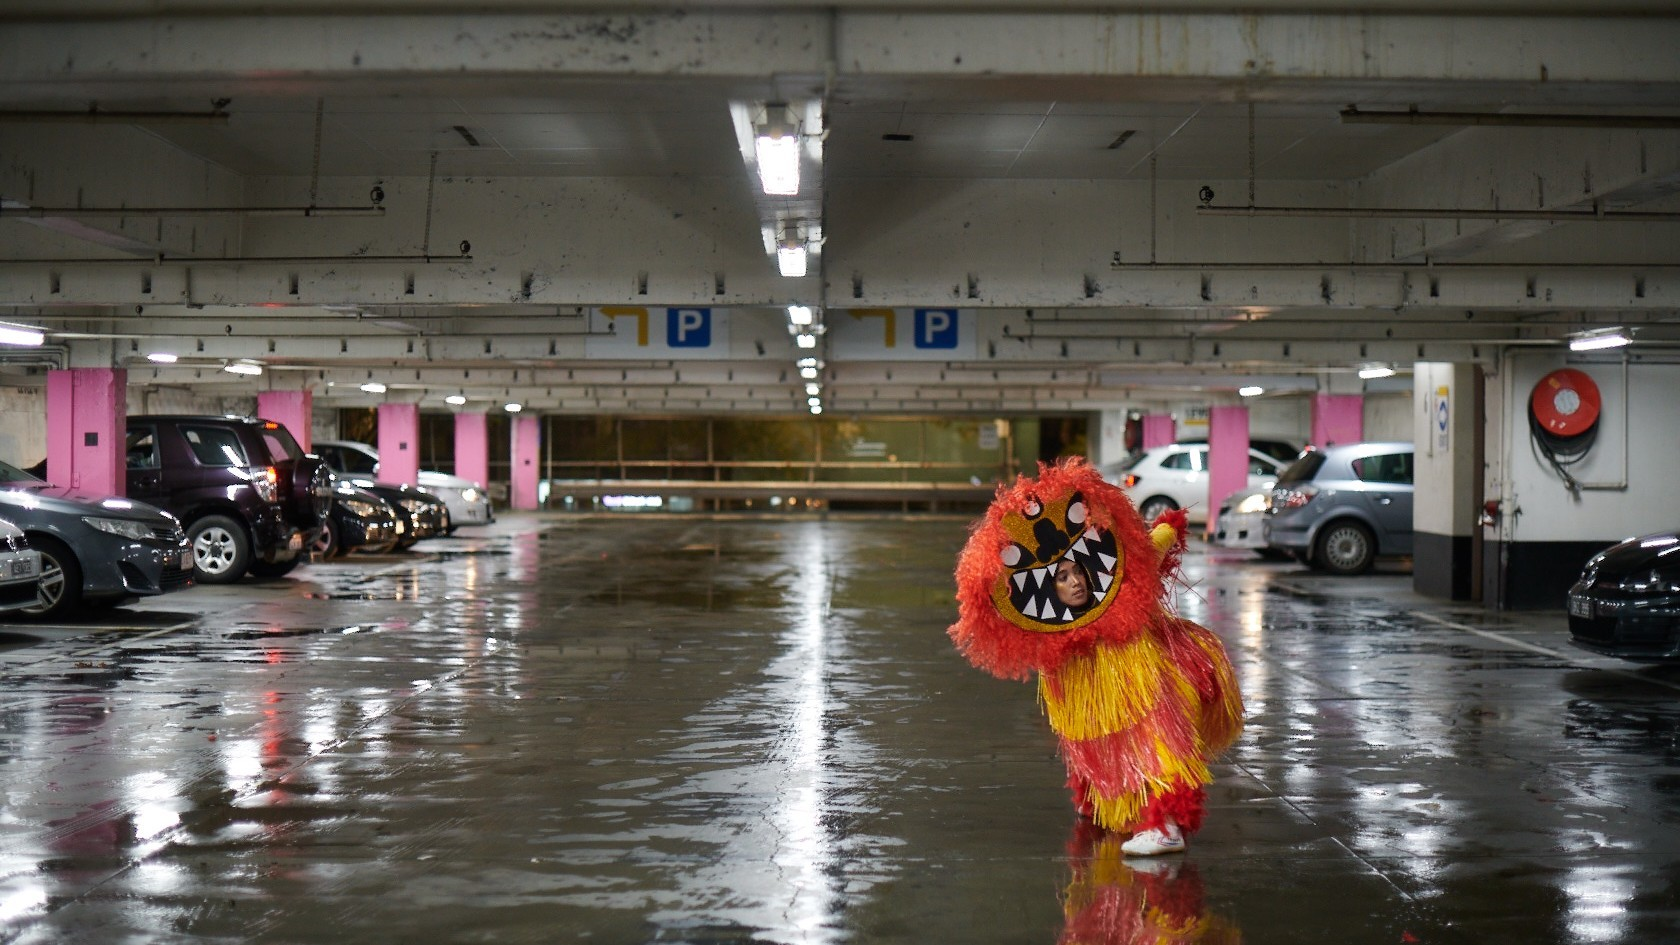 Someone dressed as a lion in a carpark